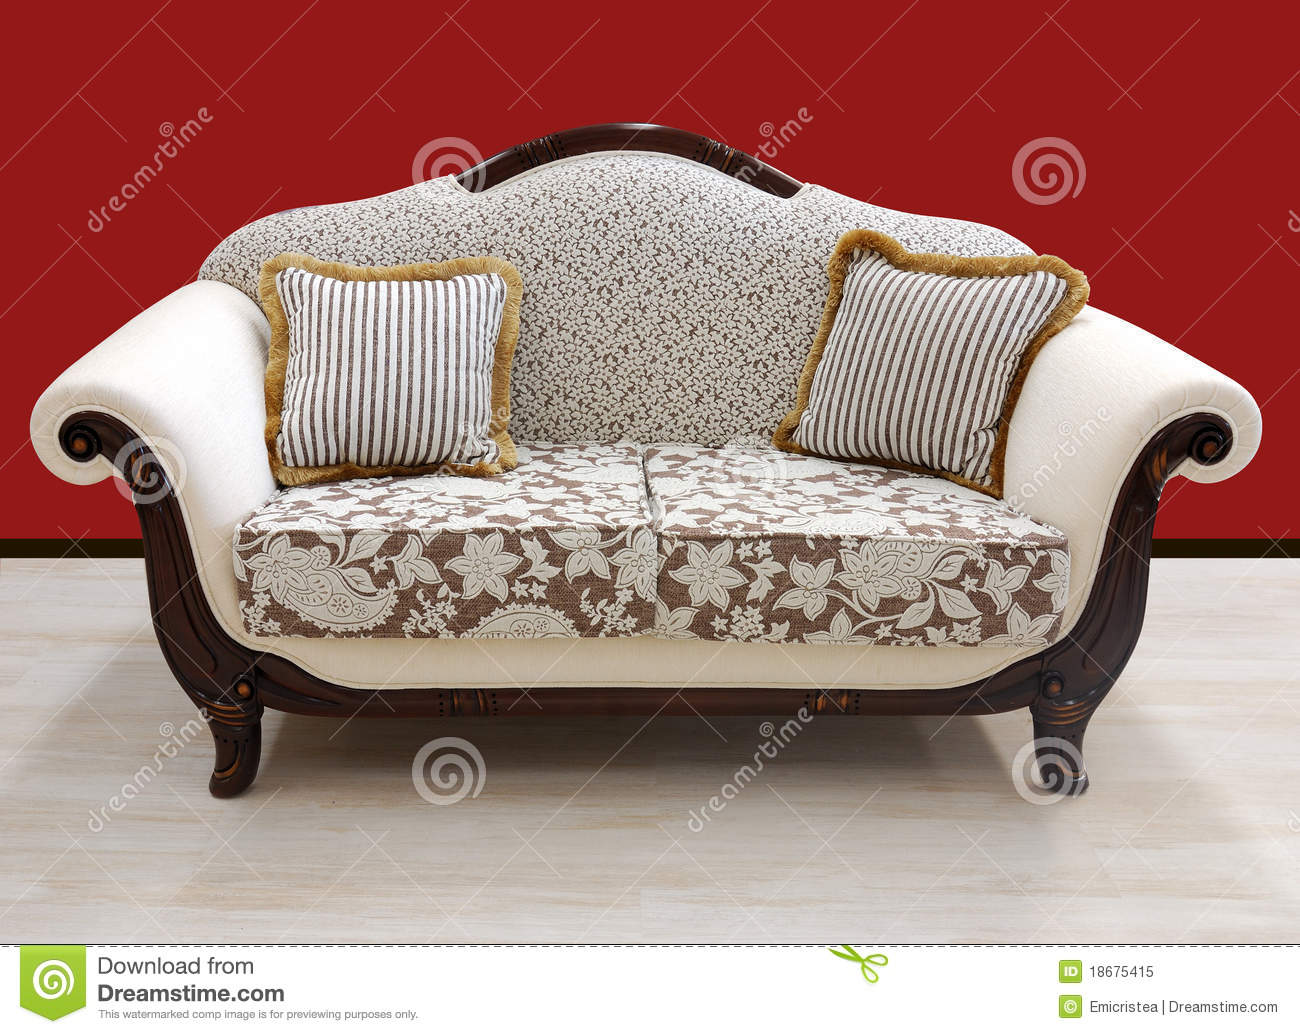 vintage design style sofa stock image image of interior. Black Bedroom Furniture Sets. Home Design Ideas